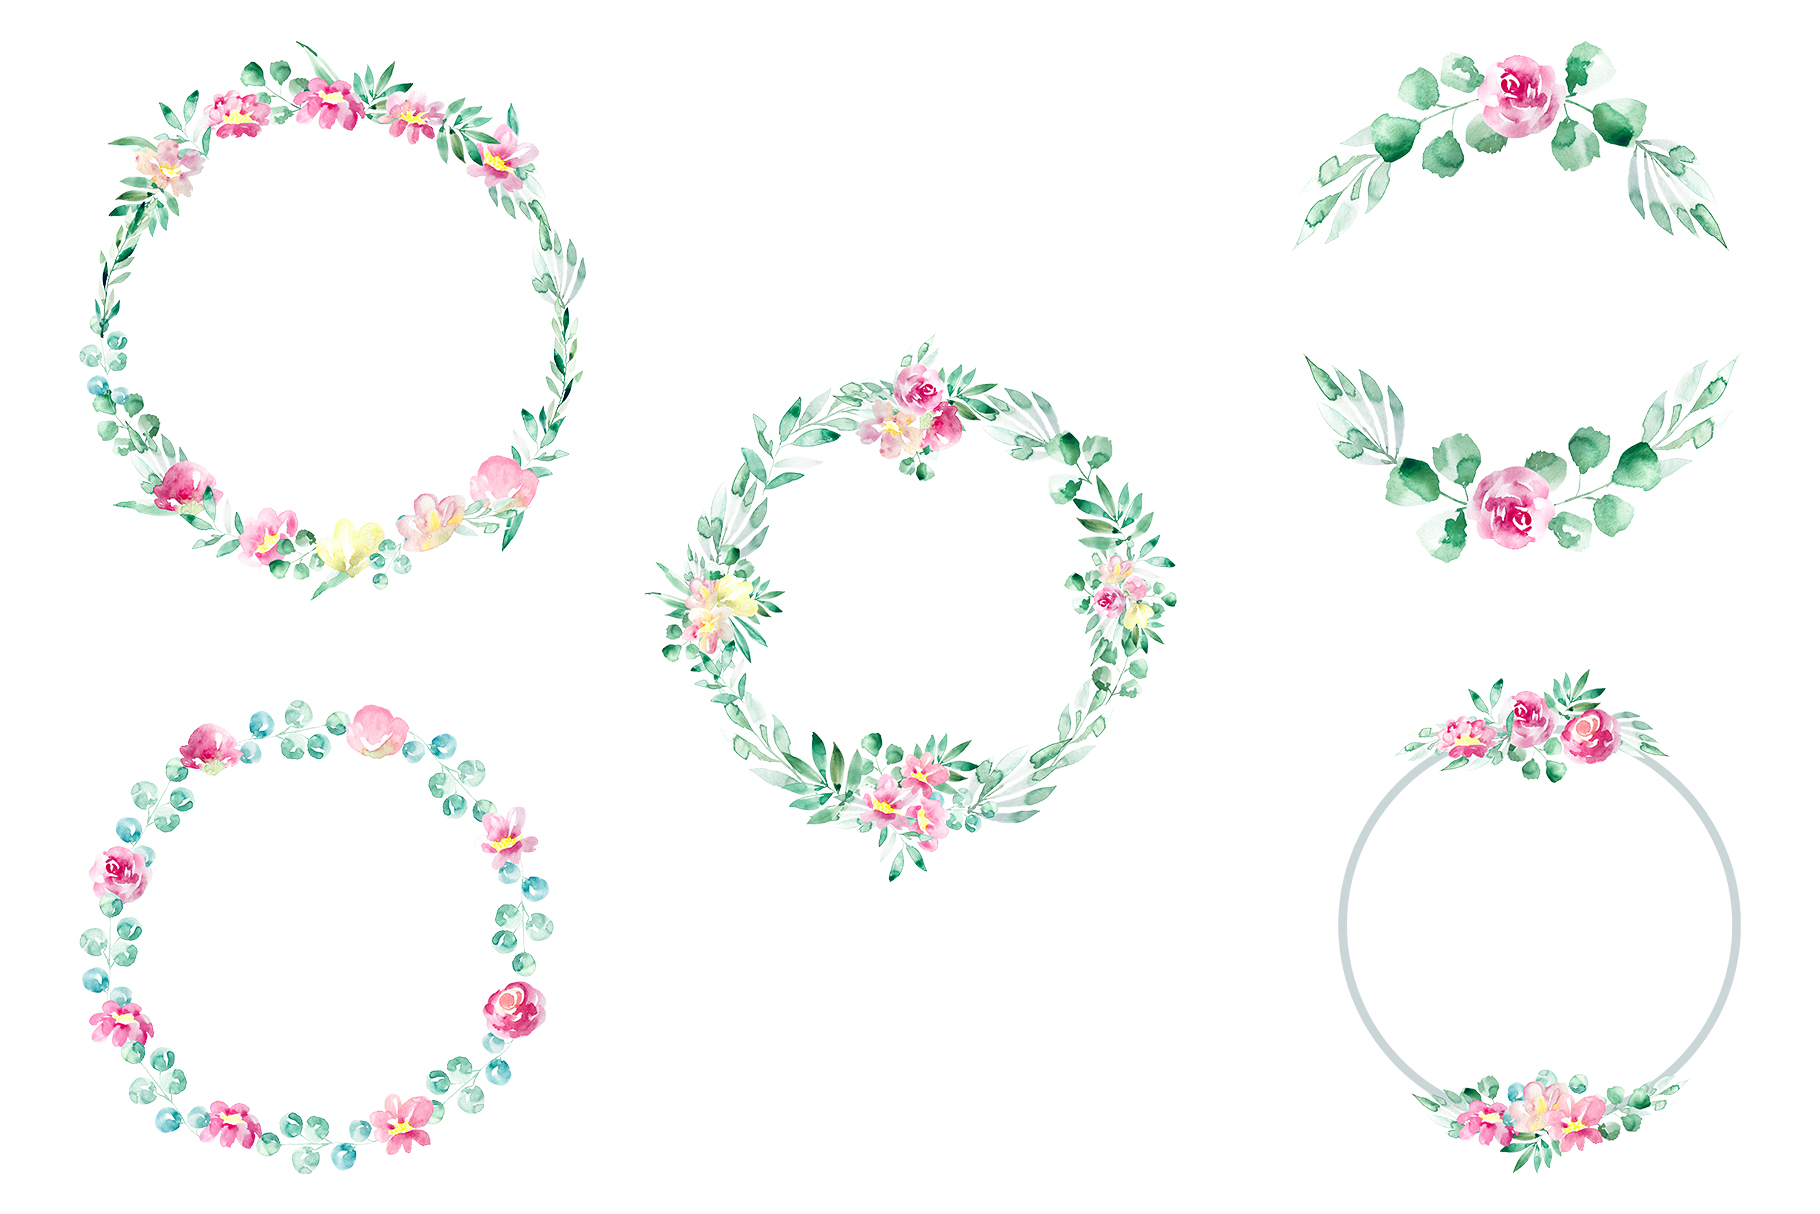 Pastel watercolor spring floral illustrations example image 6